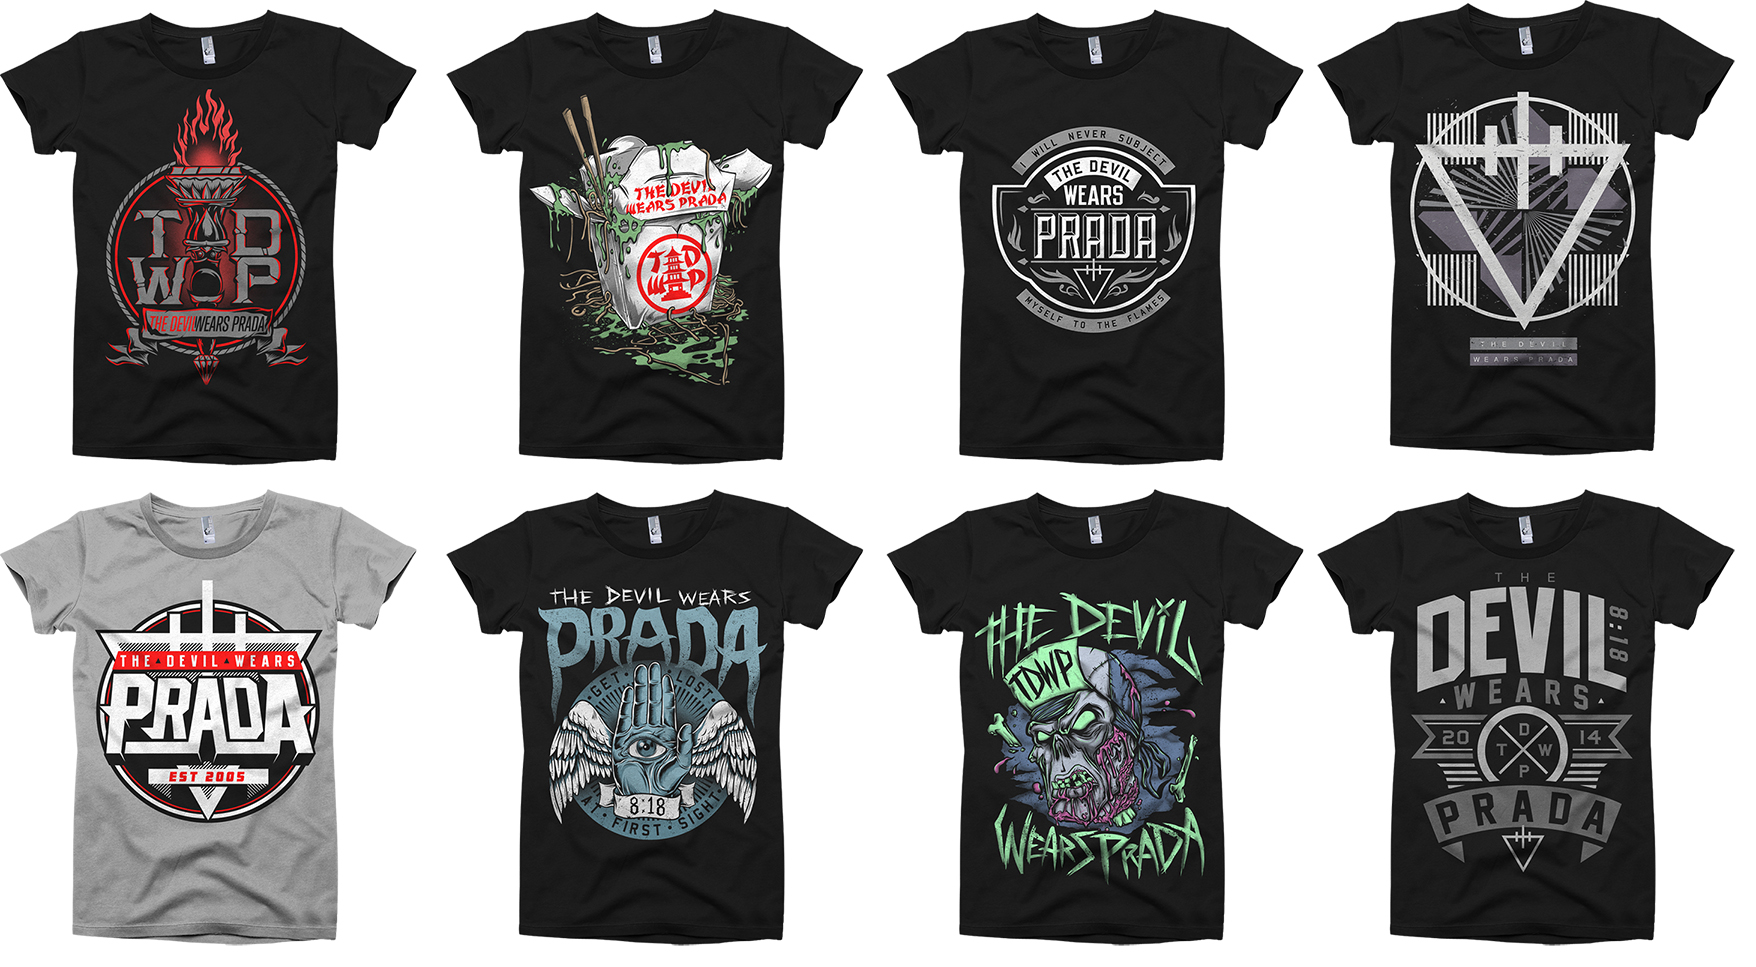 ABOVE: THESE ARE ALL DESIGNS IVE CREATED FOR TDWP SOLD THROUGHOUT THE WORLD AT VARIOUS EVENTS, THE OFFICIAL WEBSTORE, THEIR RECORD LABEL, AND RETAIL.